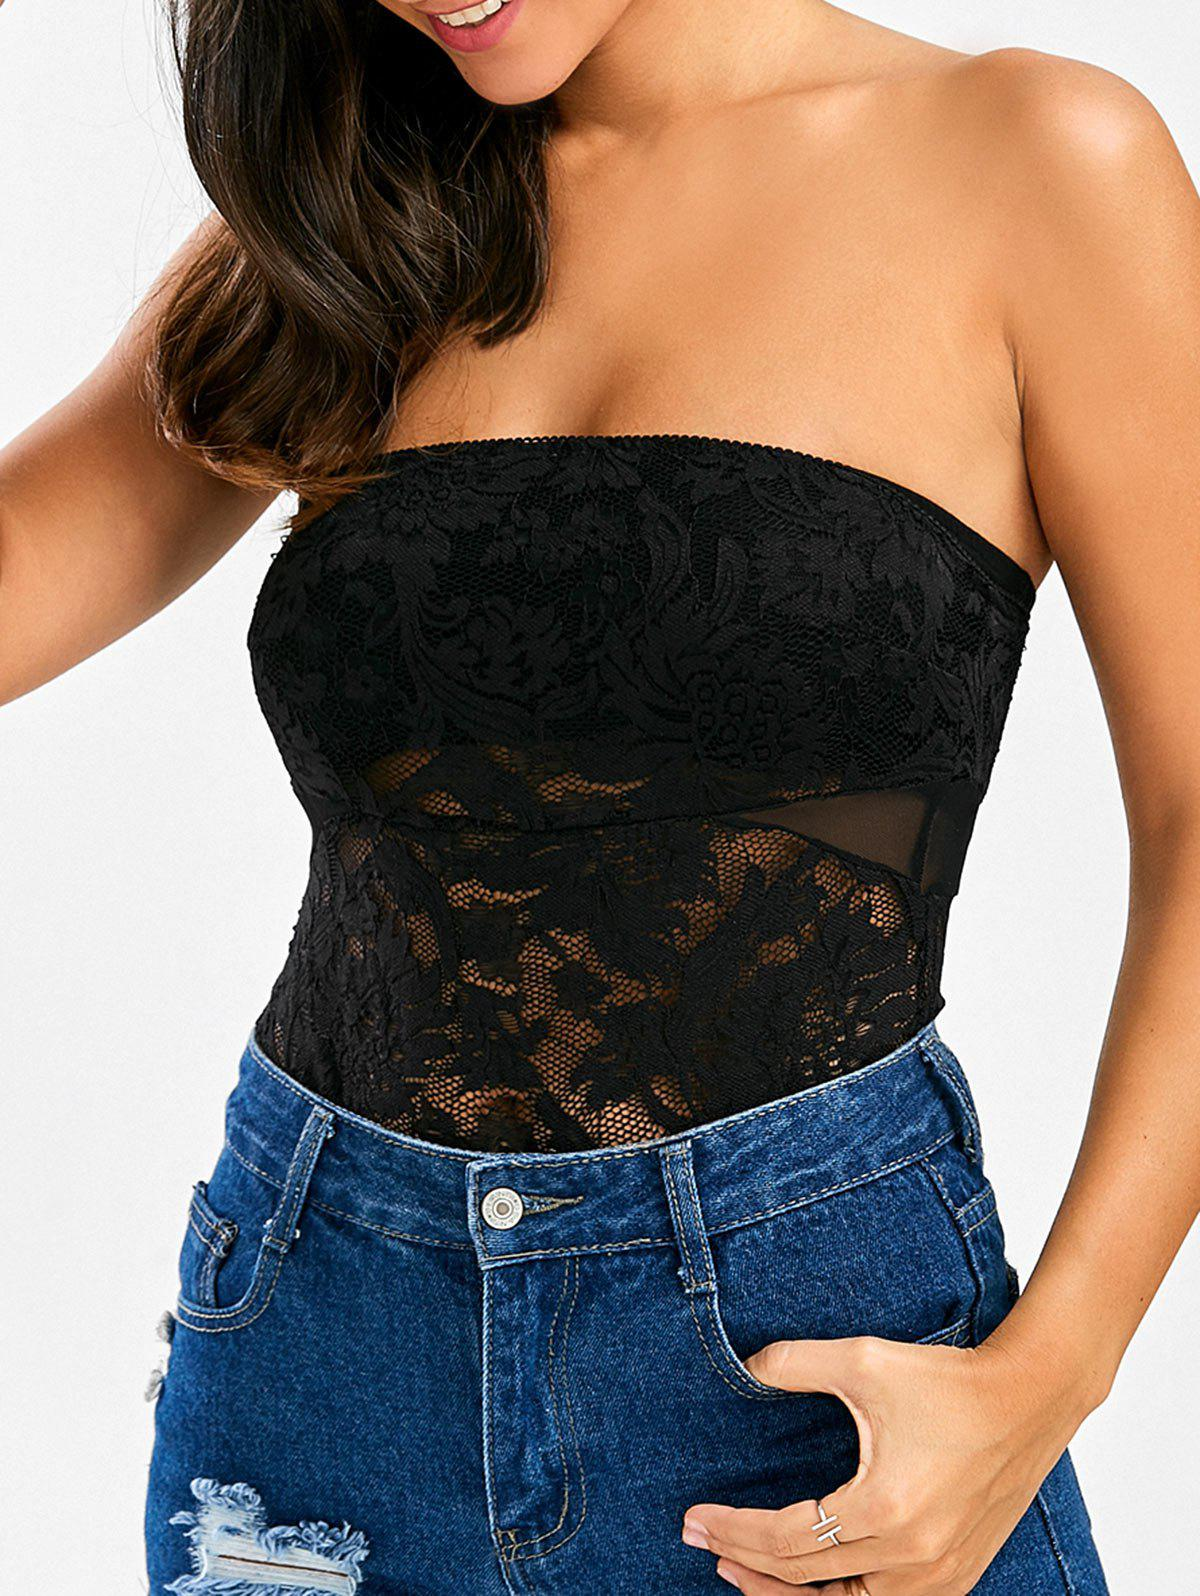 2018 see through lace tube top bodysuit black s in jumpsuits